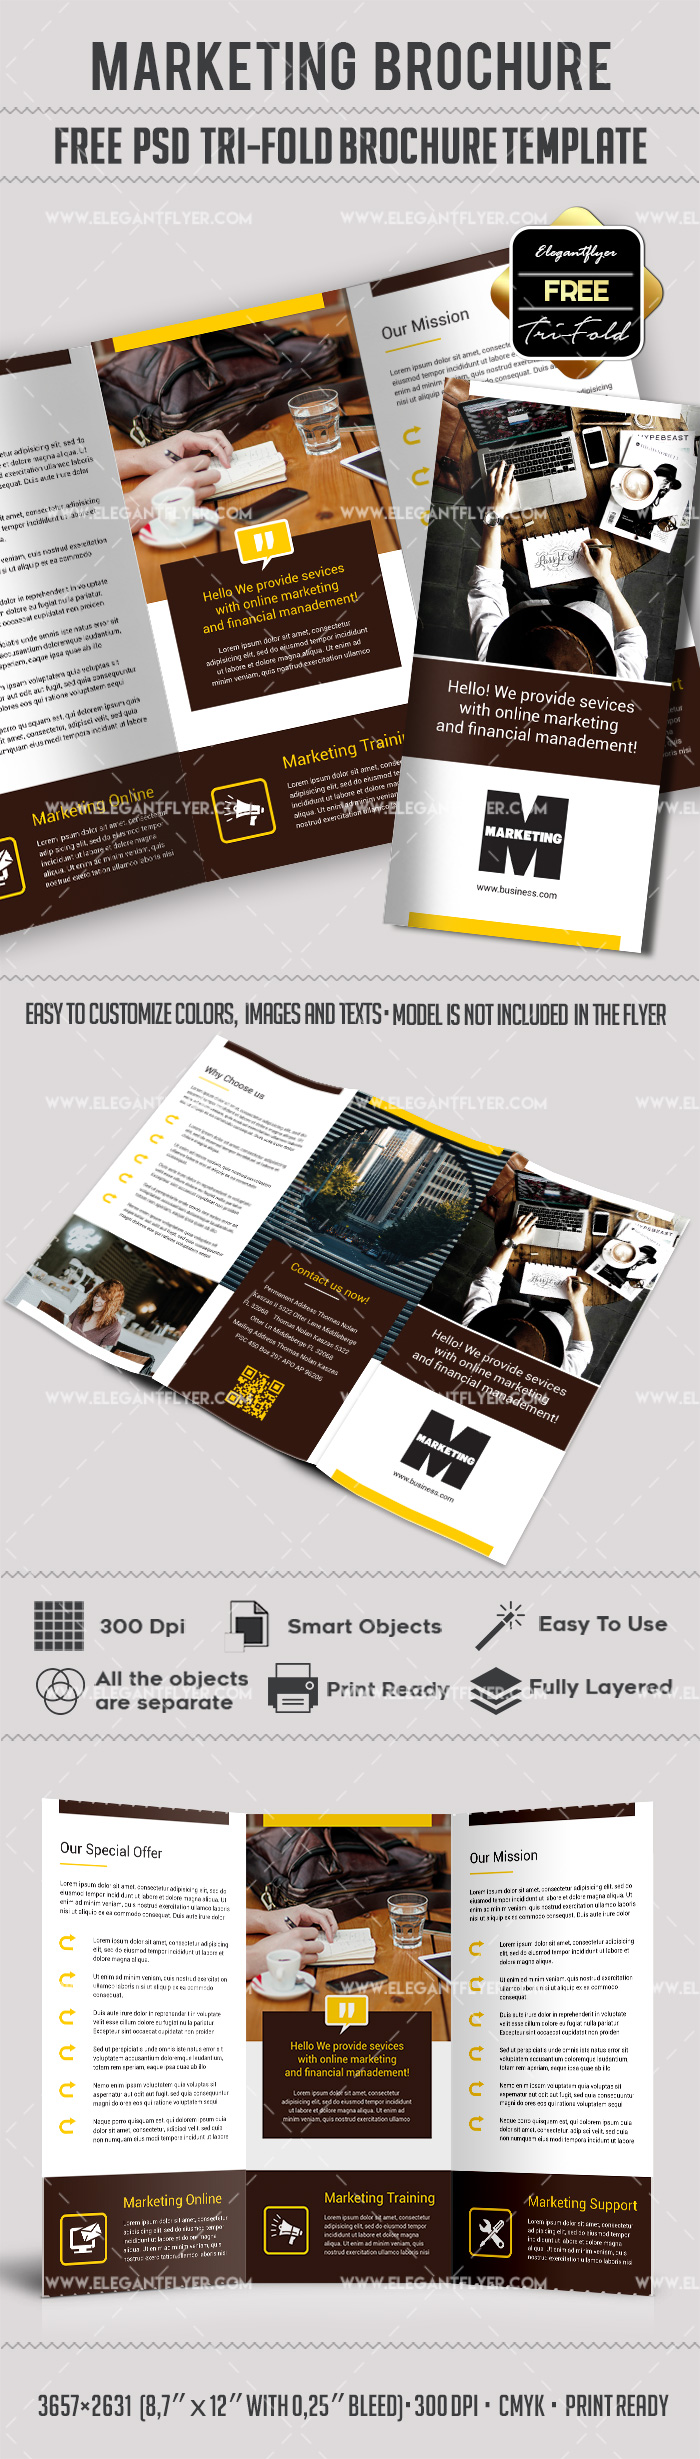 Marketing free tri fold psd brochure template by for Psd template brochure